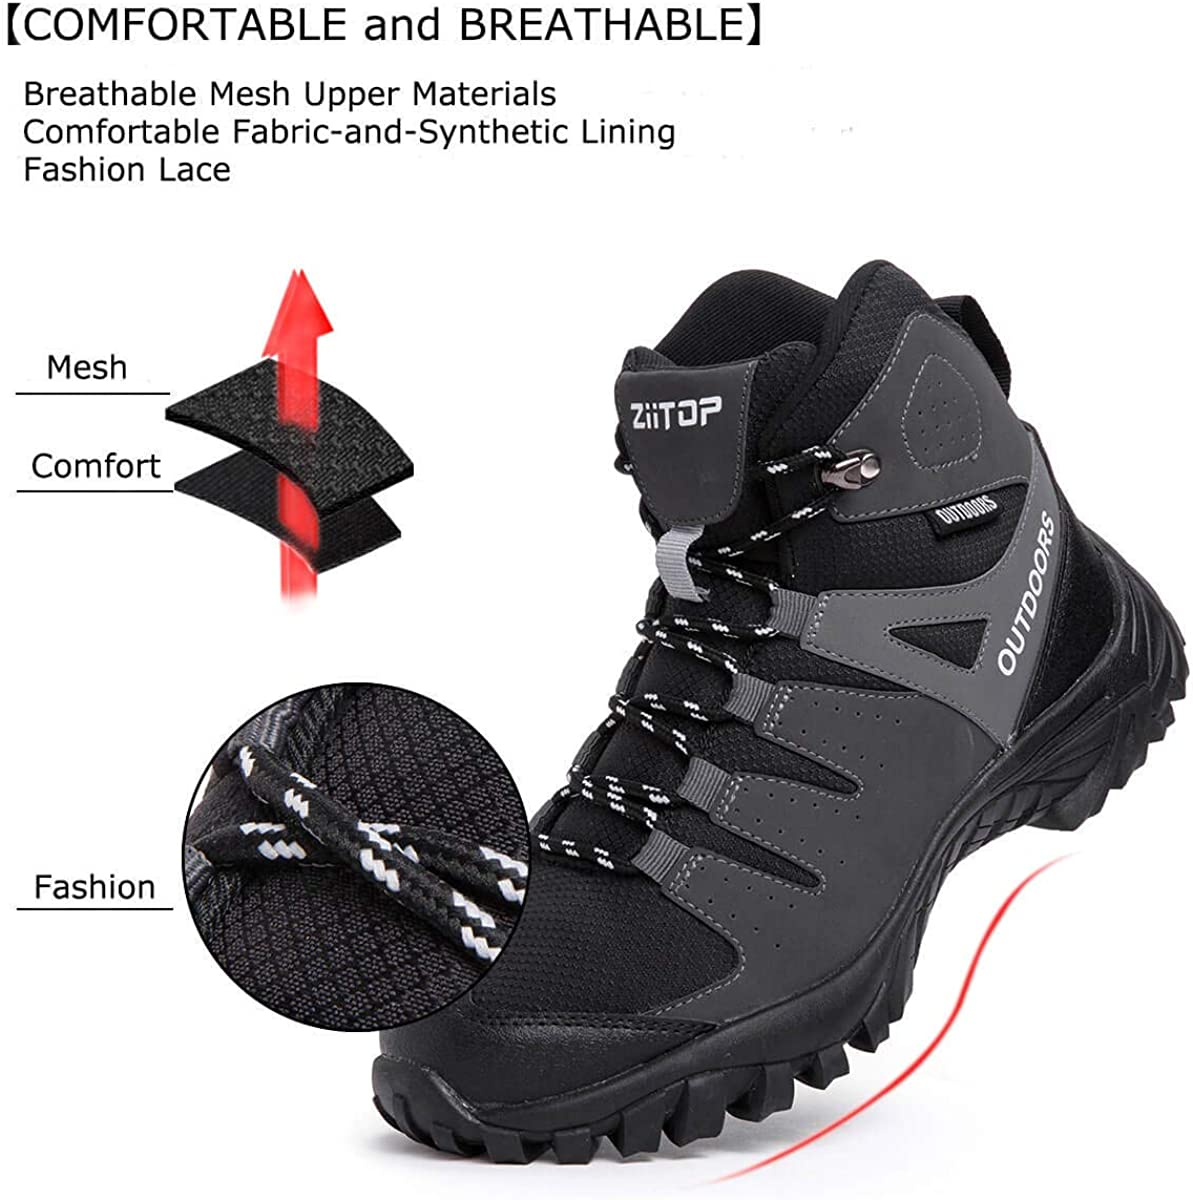 Mens Hiking Boots Breathable Lightweight Trekking Backpacking Mountaineering Boots High-Traction Grip Outdoors Hiker Boot for Men